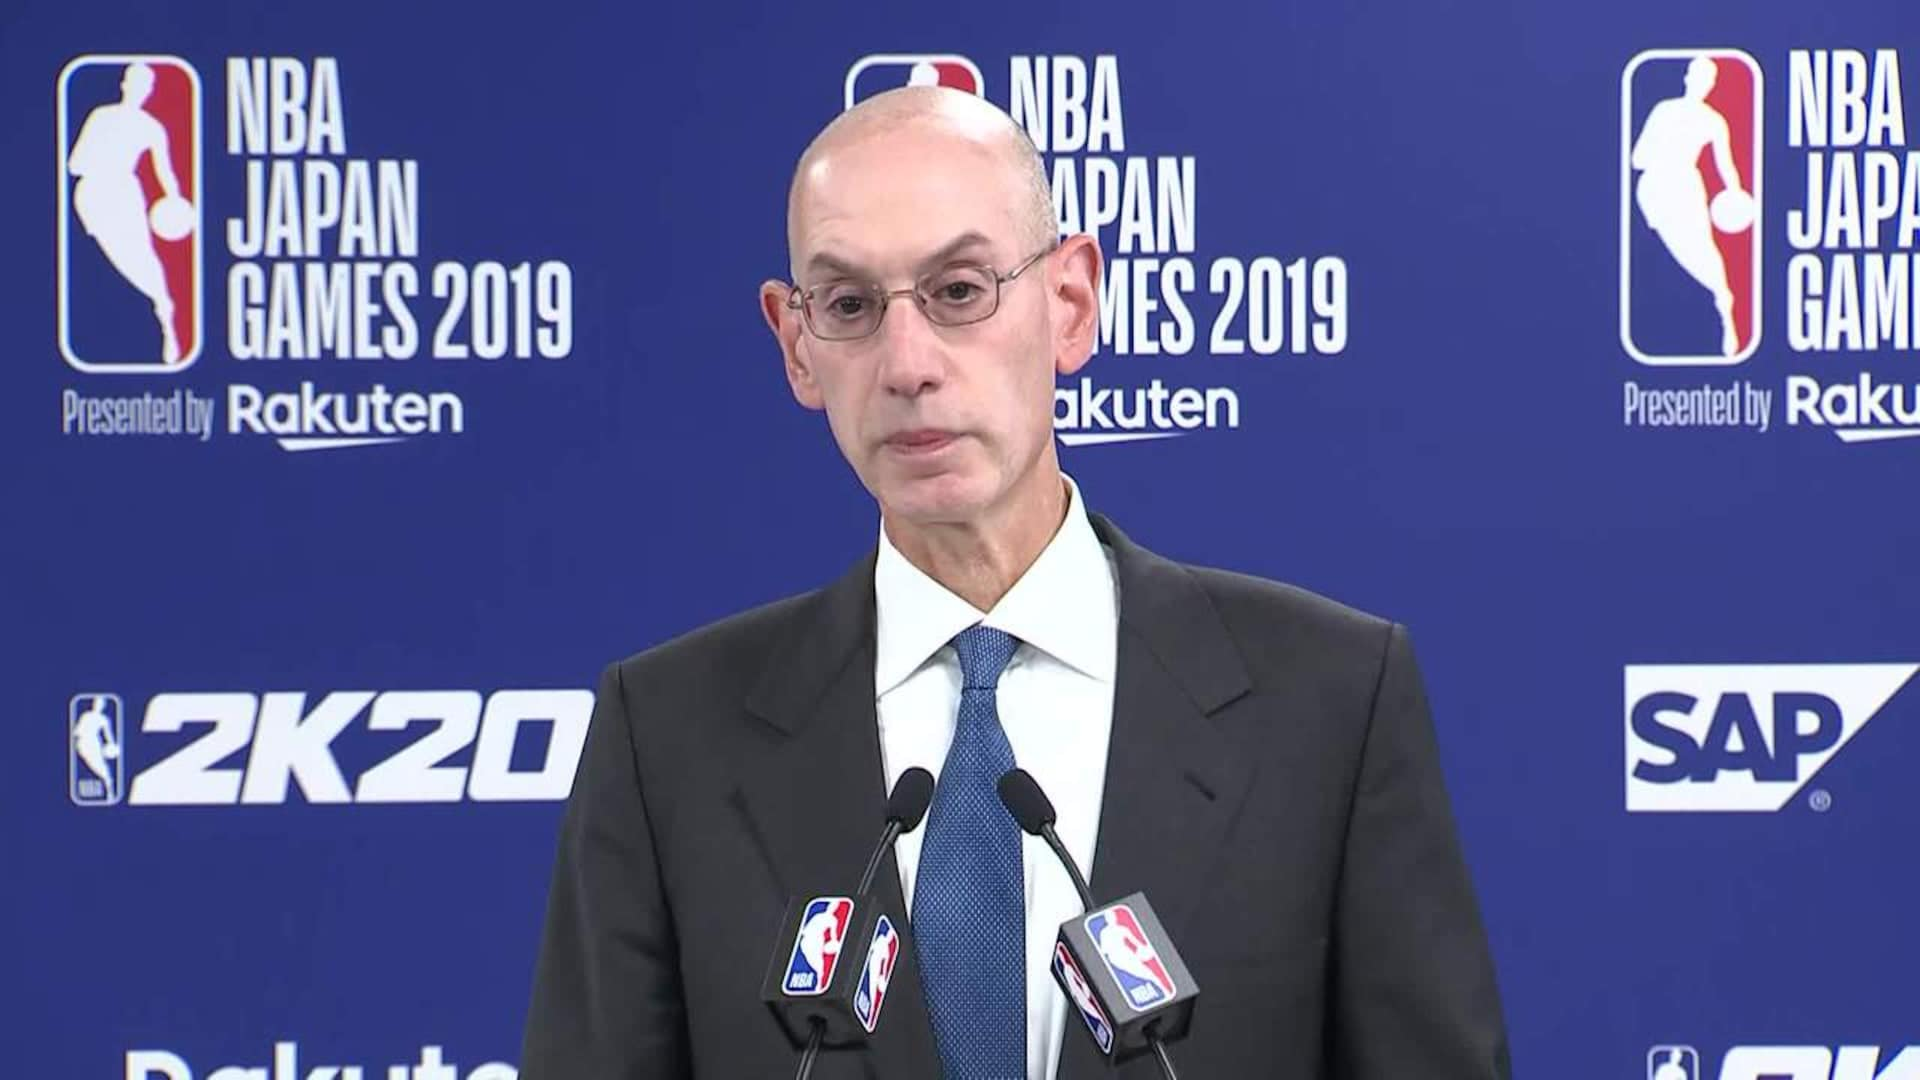 Commissioner Silver on China-NBA relations | NBA.com